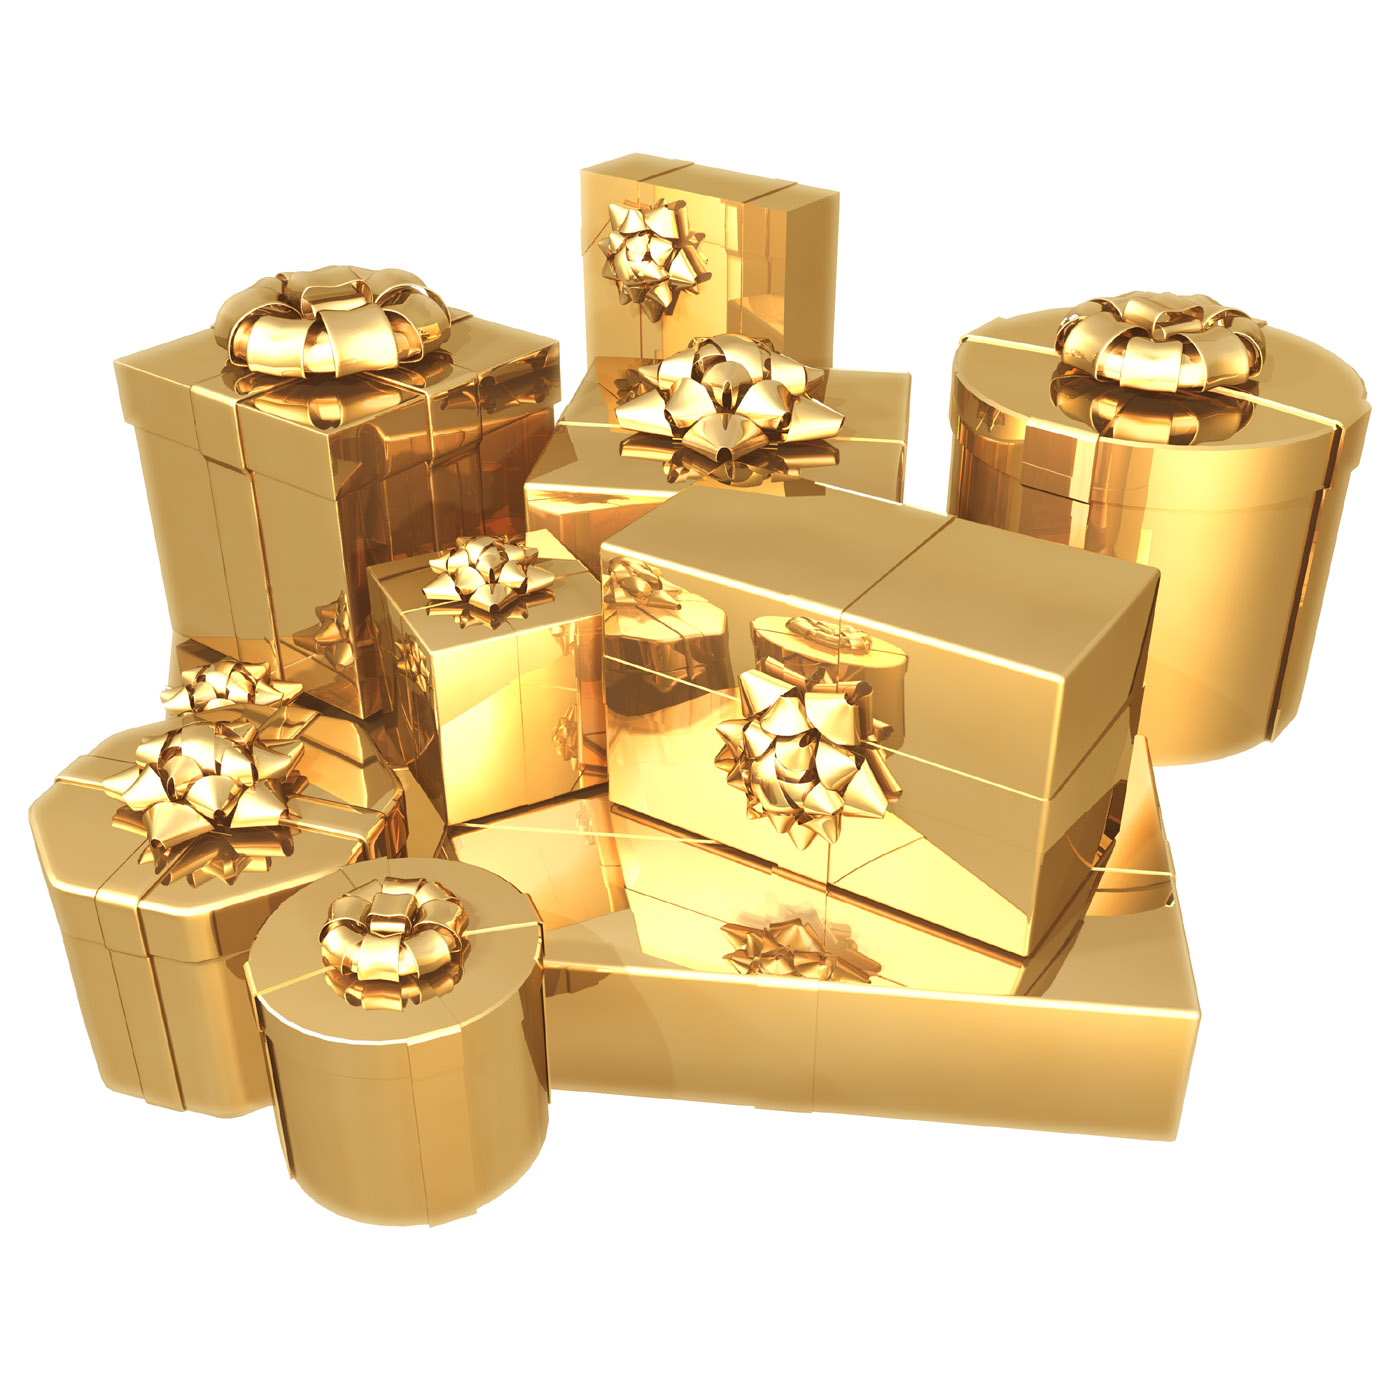 D gold gifts and gift picture 24362